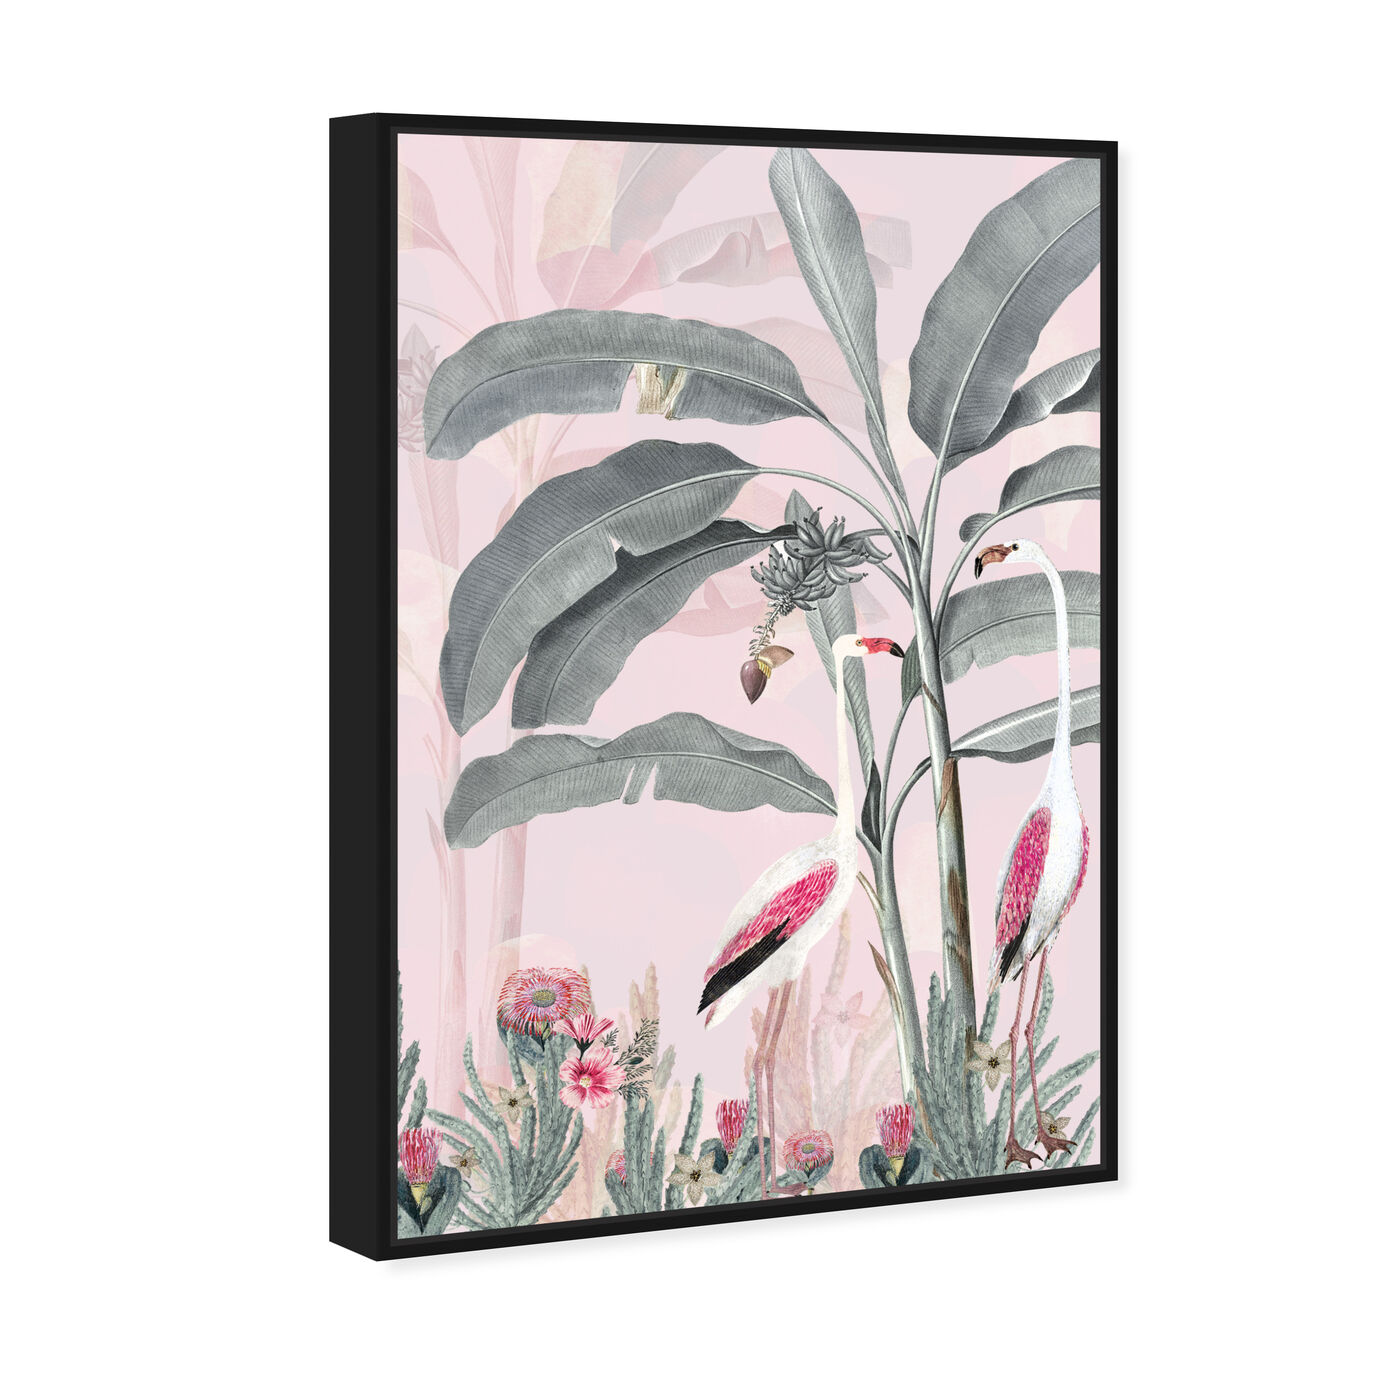 Angled view of Flamingo Pink featuring animals and birds art.